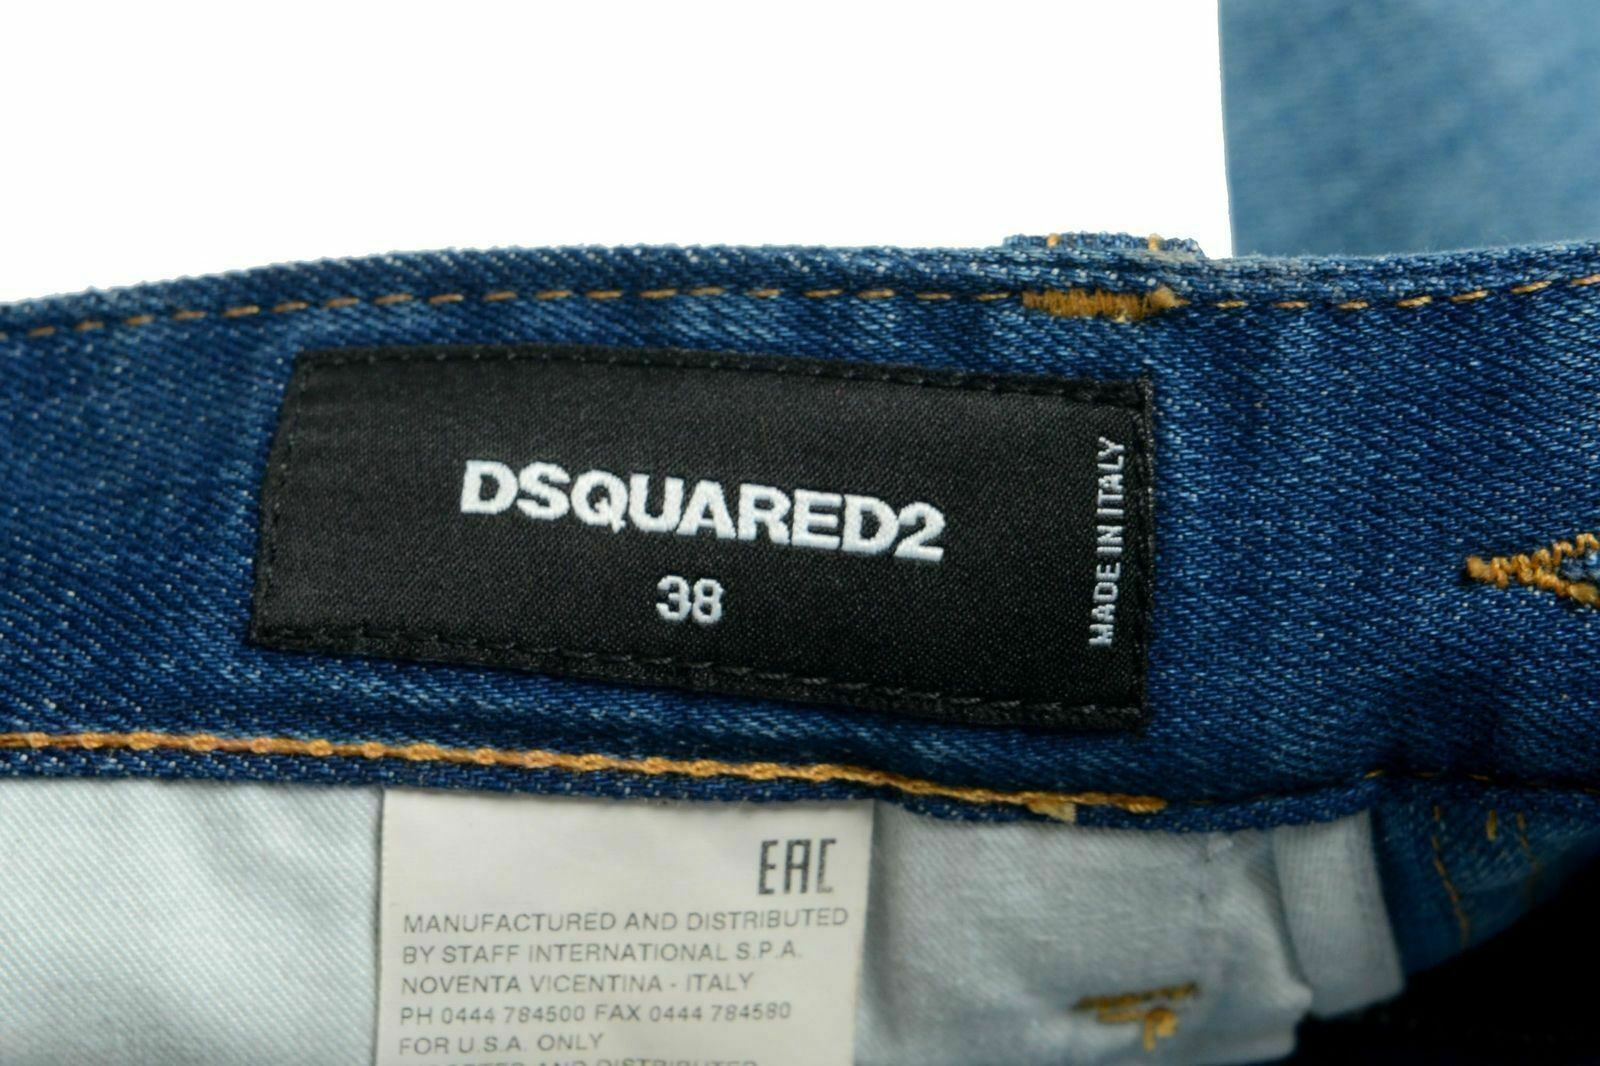 Dsquared2 Multicolore Jeans Jeans Jeans Vita Alta Donna Gonna a Tubino USA XS It 38 c765a0